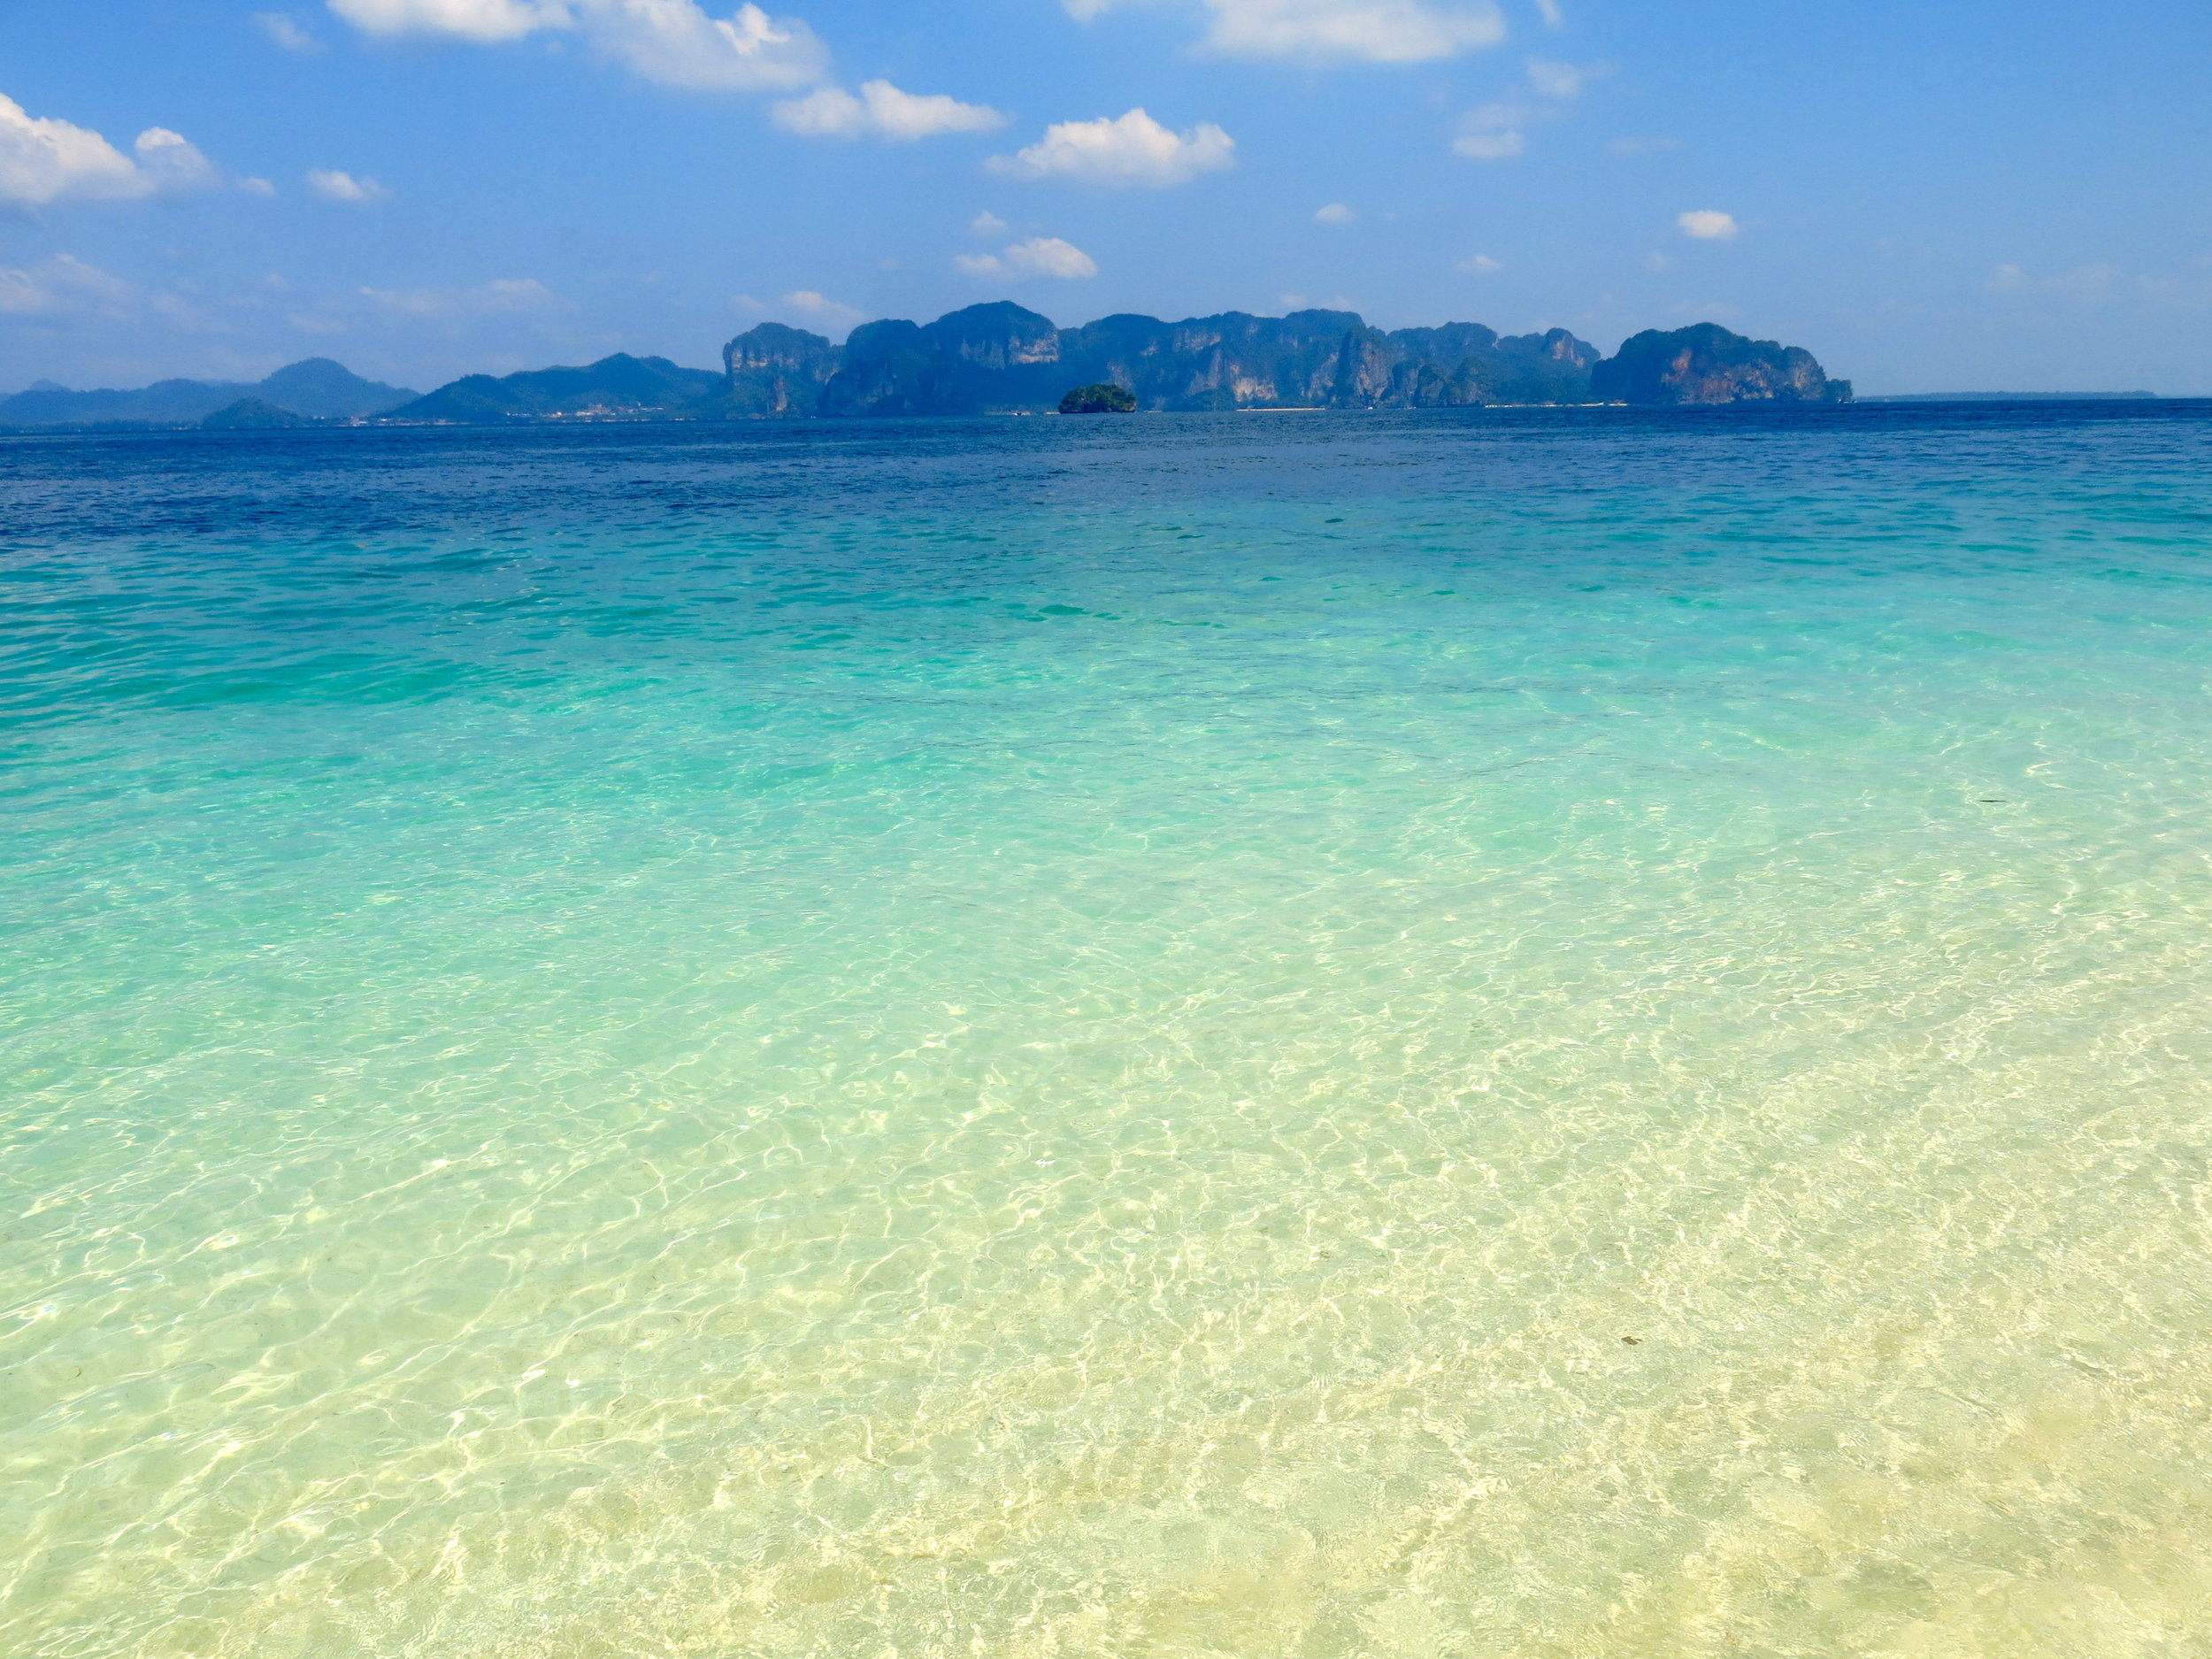 Turquoise sea at Koh Poda island with Railay in the horizon